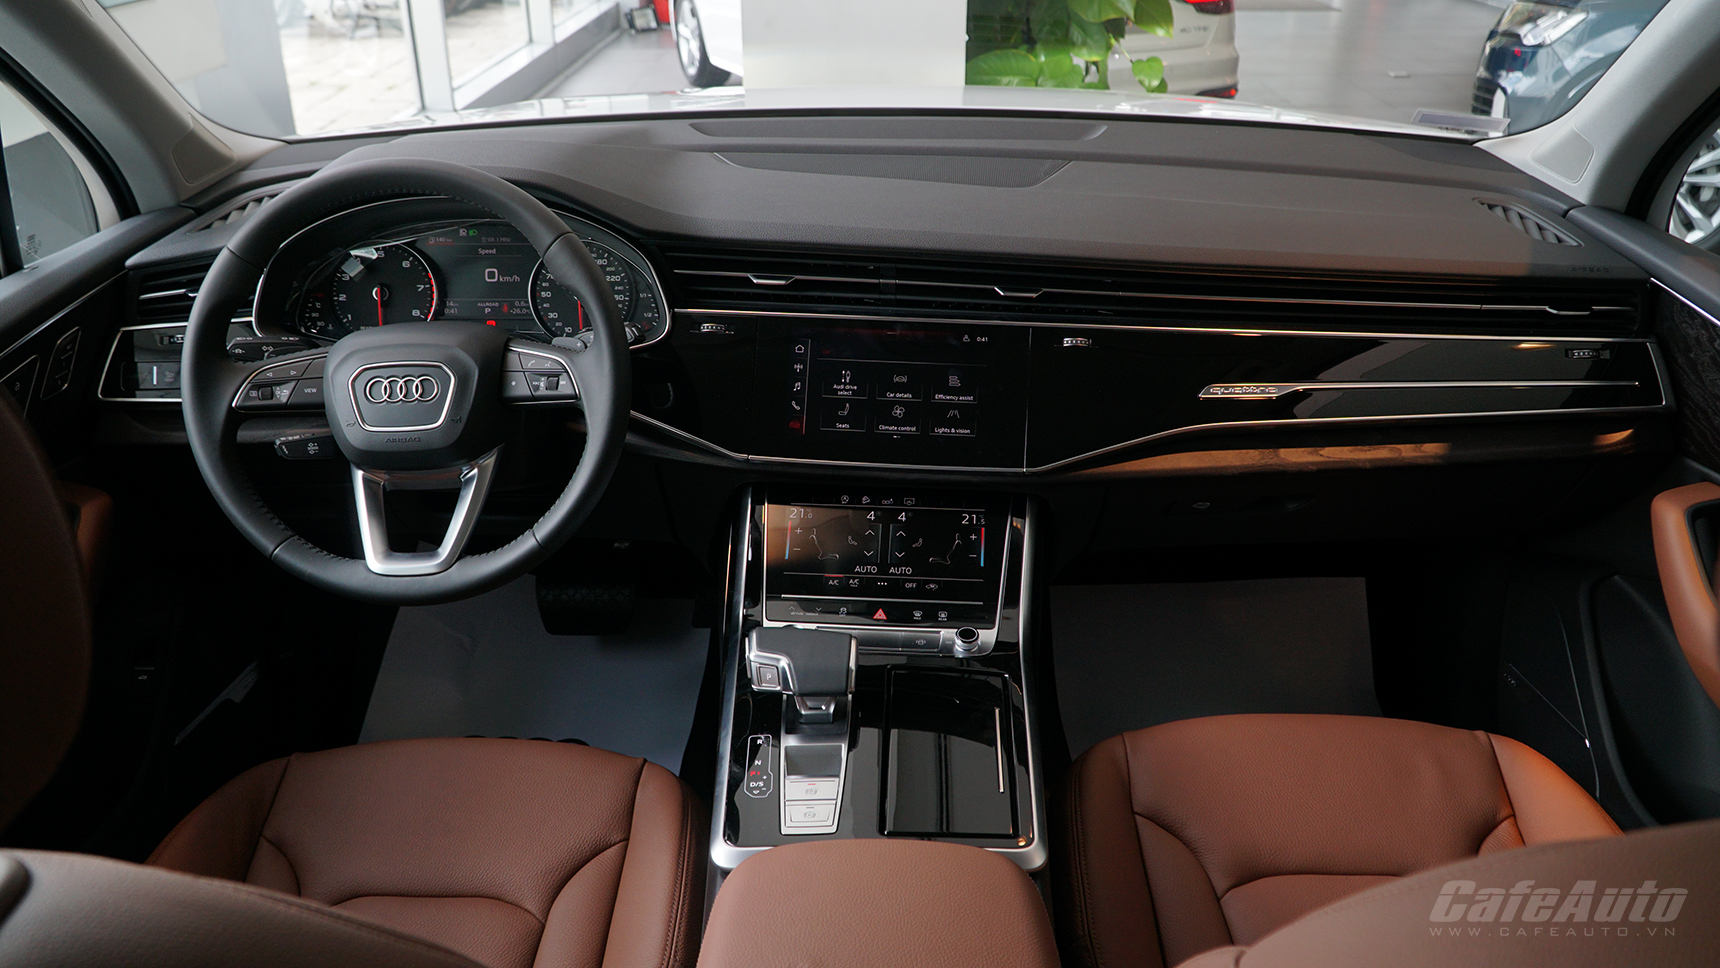 can-canh-audi-q7-the-he-moi